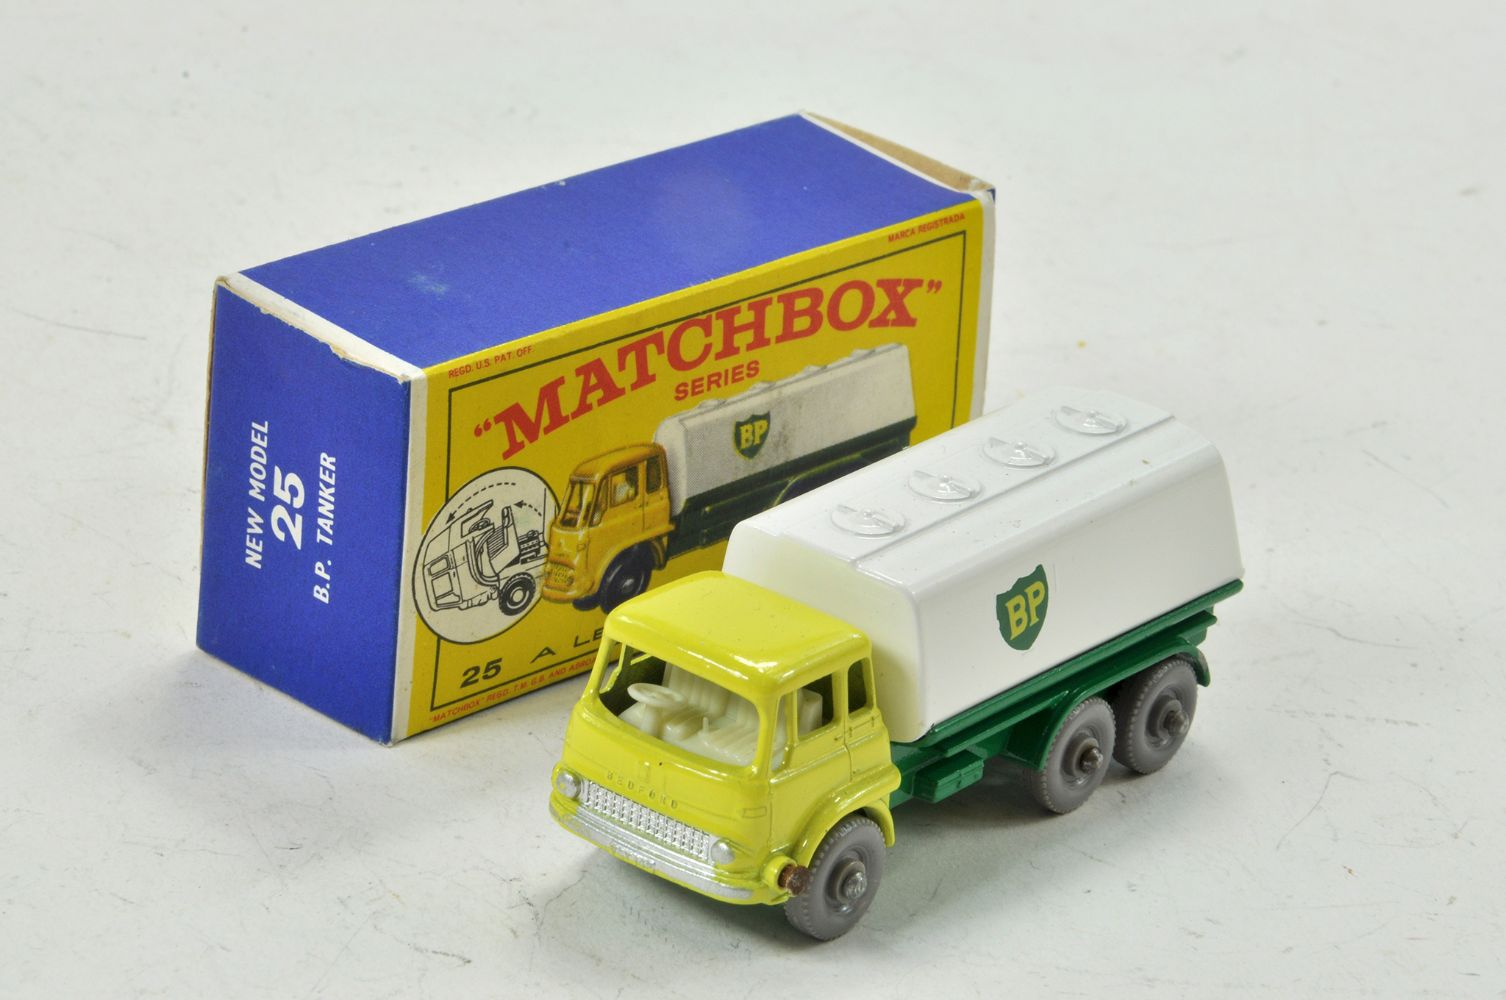 Specialist Toys, Models and Collectables Auction - Two Day Event